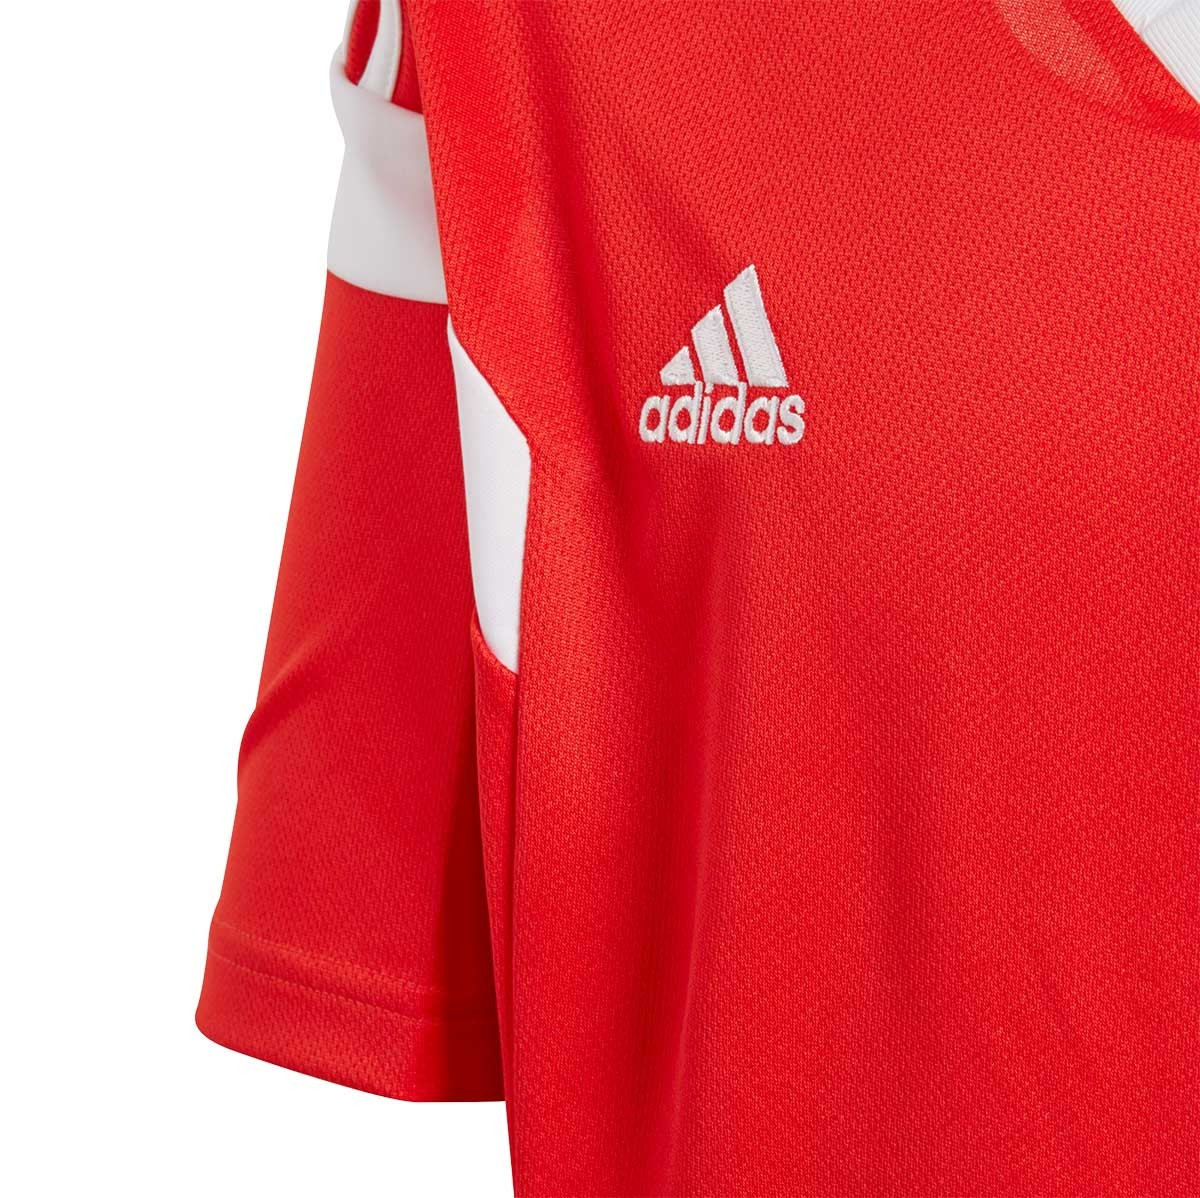 e919d662 Jersey adidas Kids Russia 2017-2018 Home Red-White - Football store Fútbol  Emotion